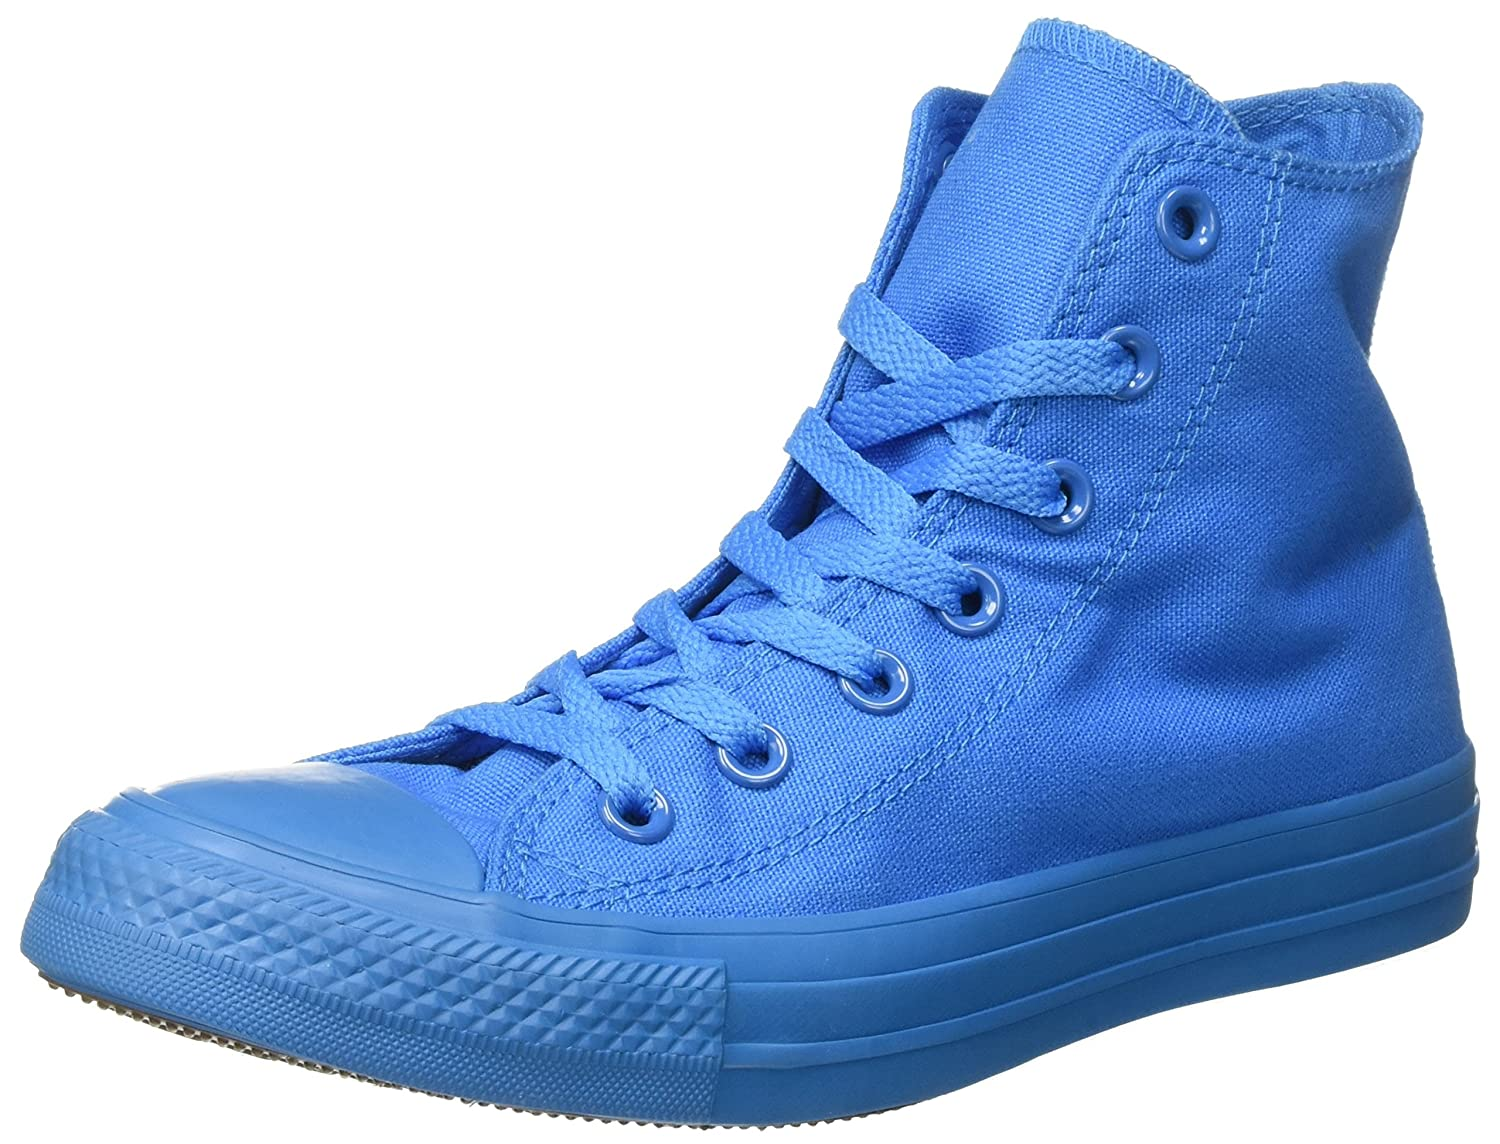 Royalblau Converse Unisex-Erwachsene All Star Hi Monochrome High-top, Royalblau, 38 EU